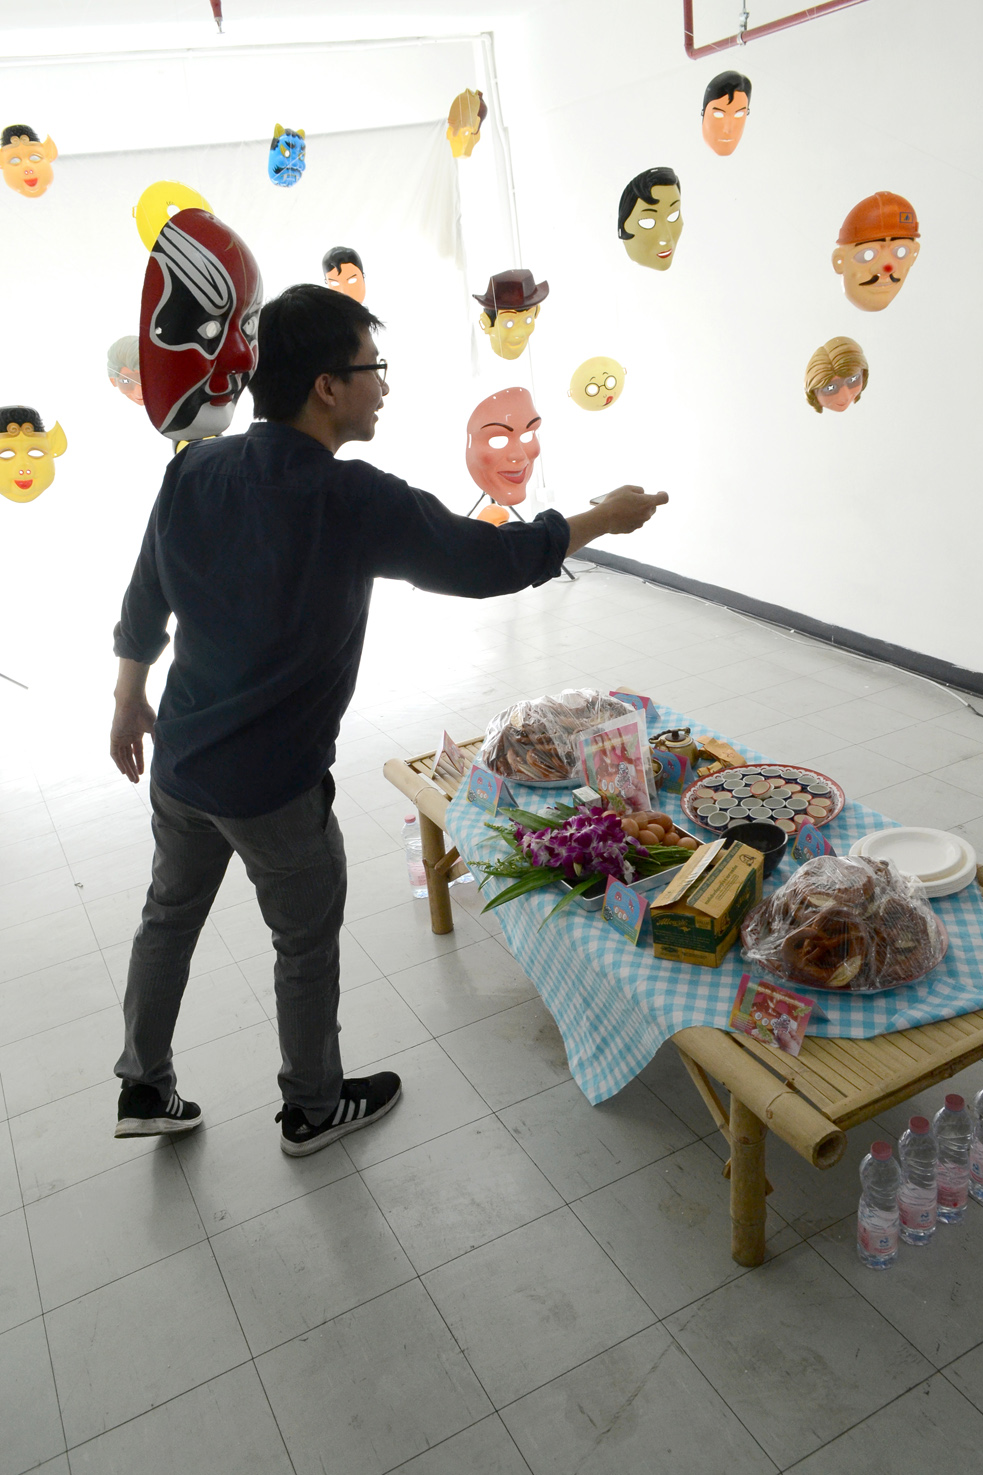 stay hungry sangnual lap Bangkok Berlin art project space food culture intervention Michel Aniol Meike Kuhnert